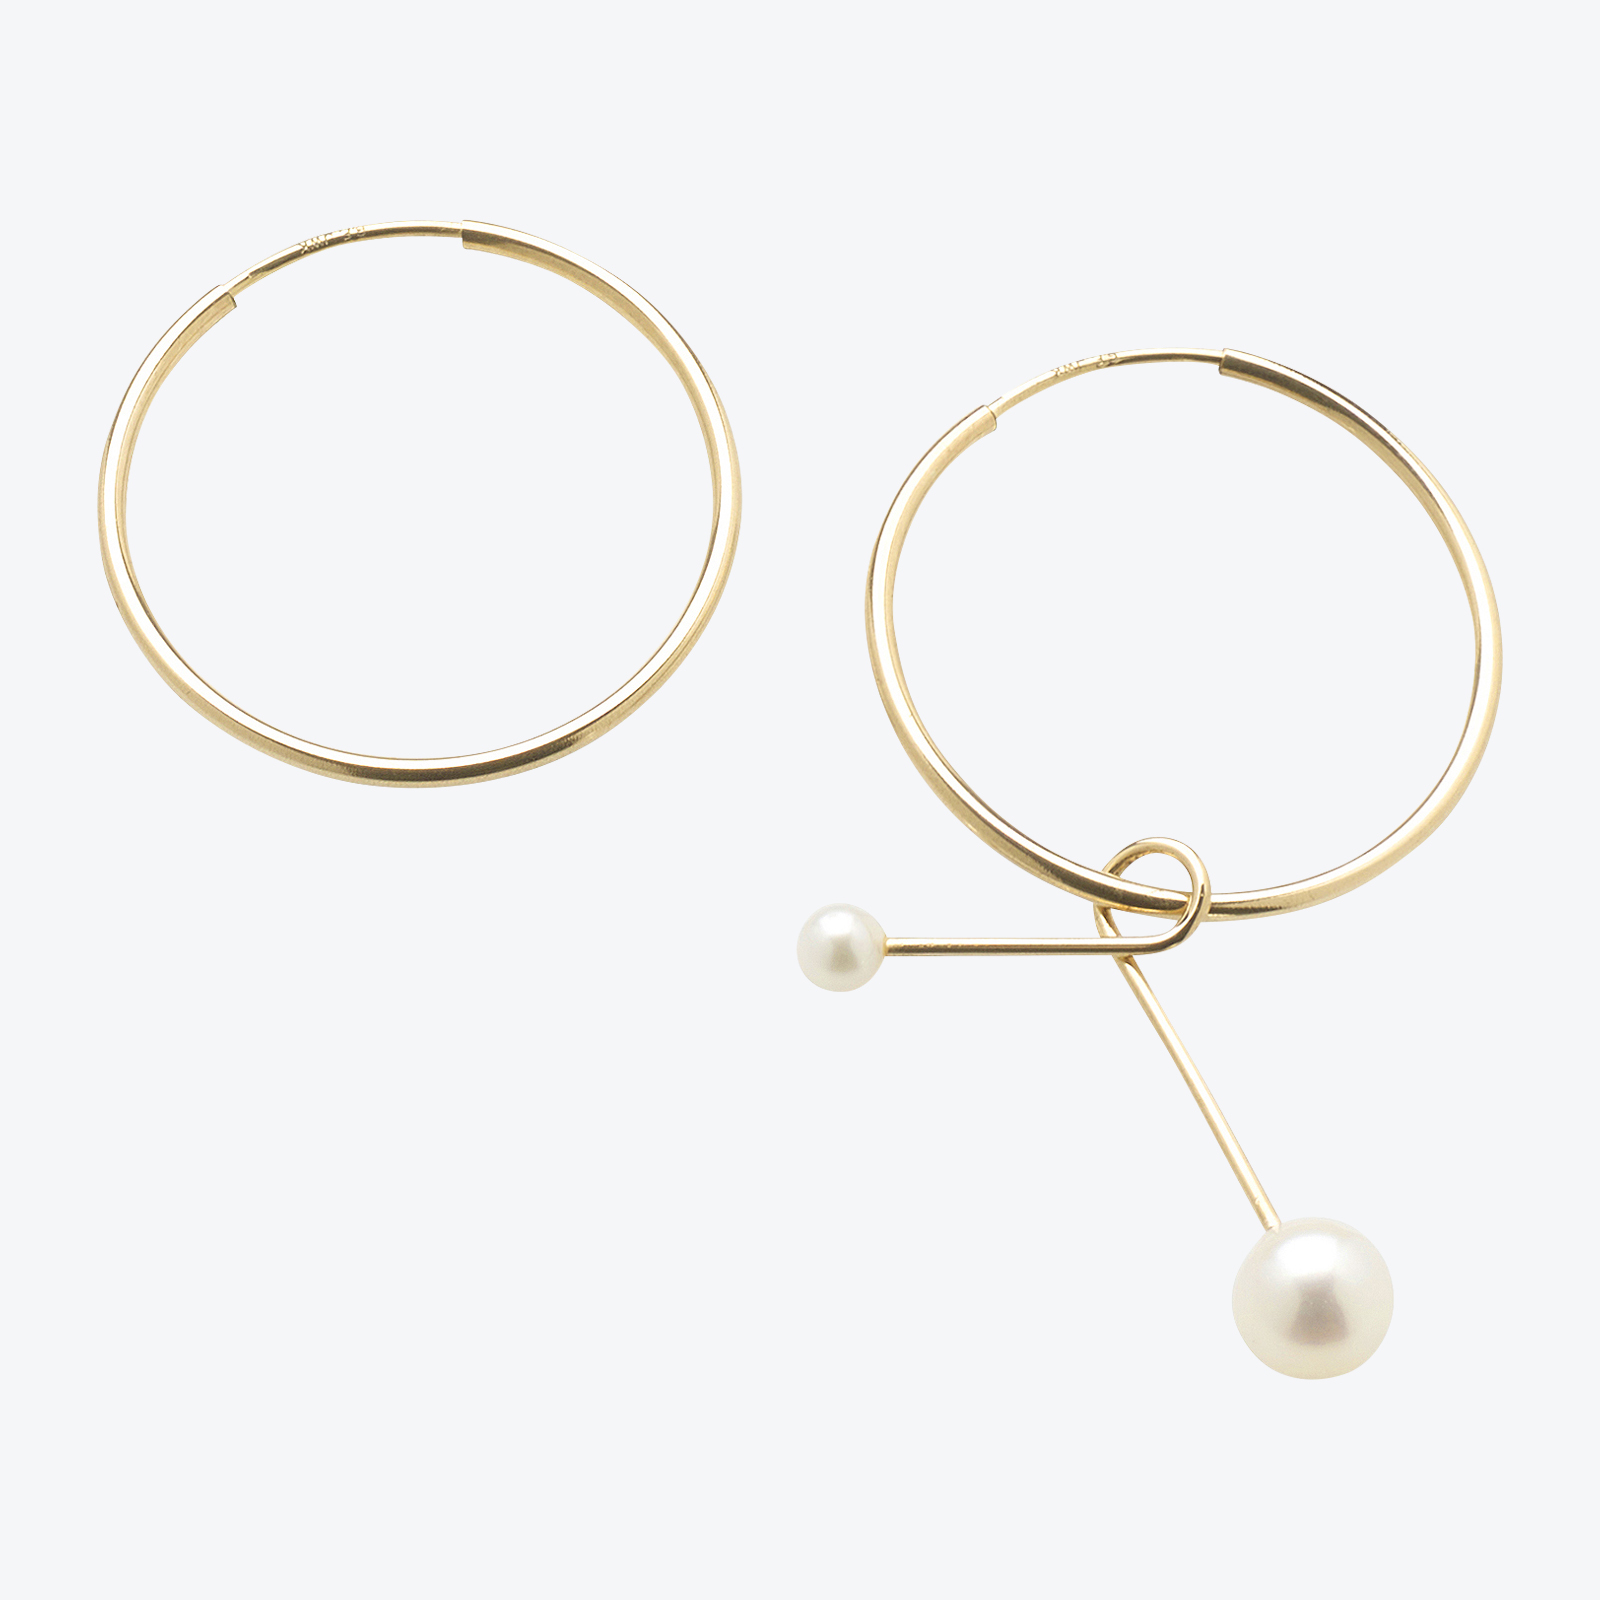 Twirl Hoops In Gold Filled With Freshwater Pearls By Pip Stent 01